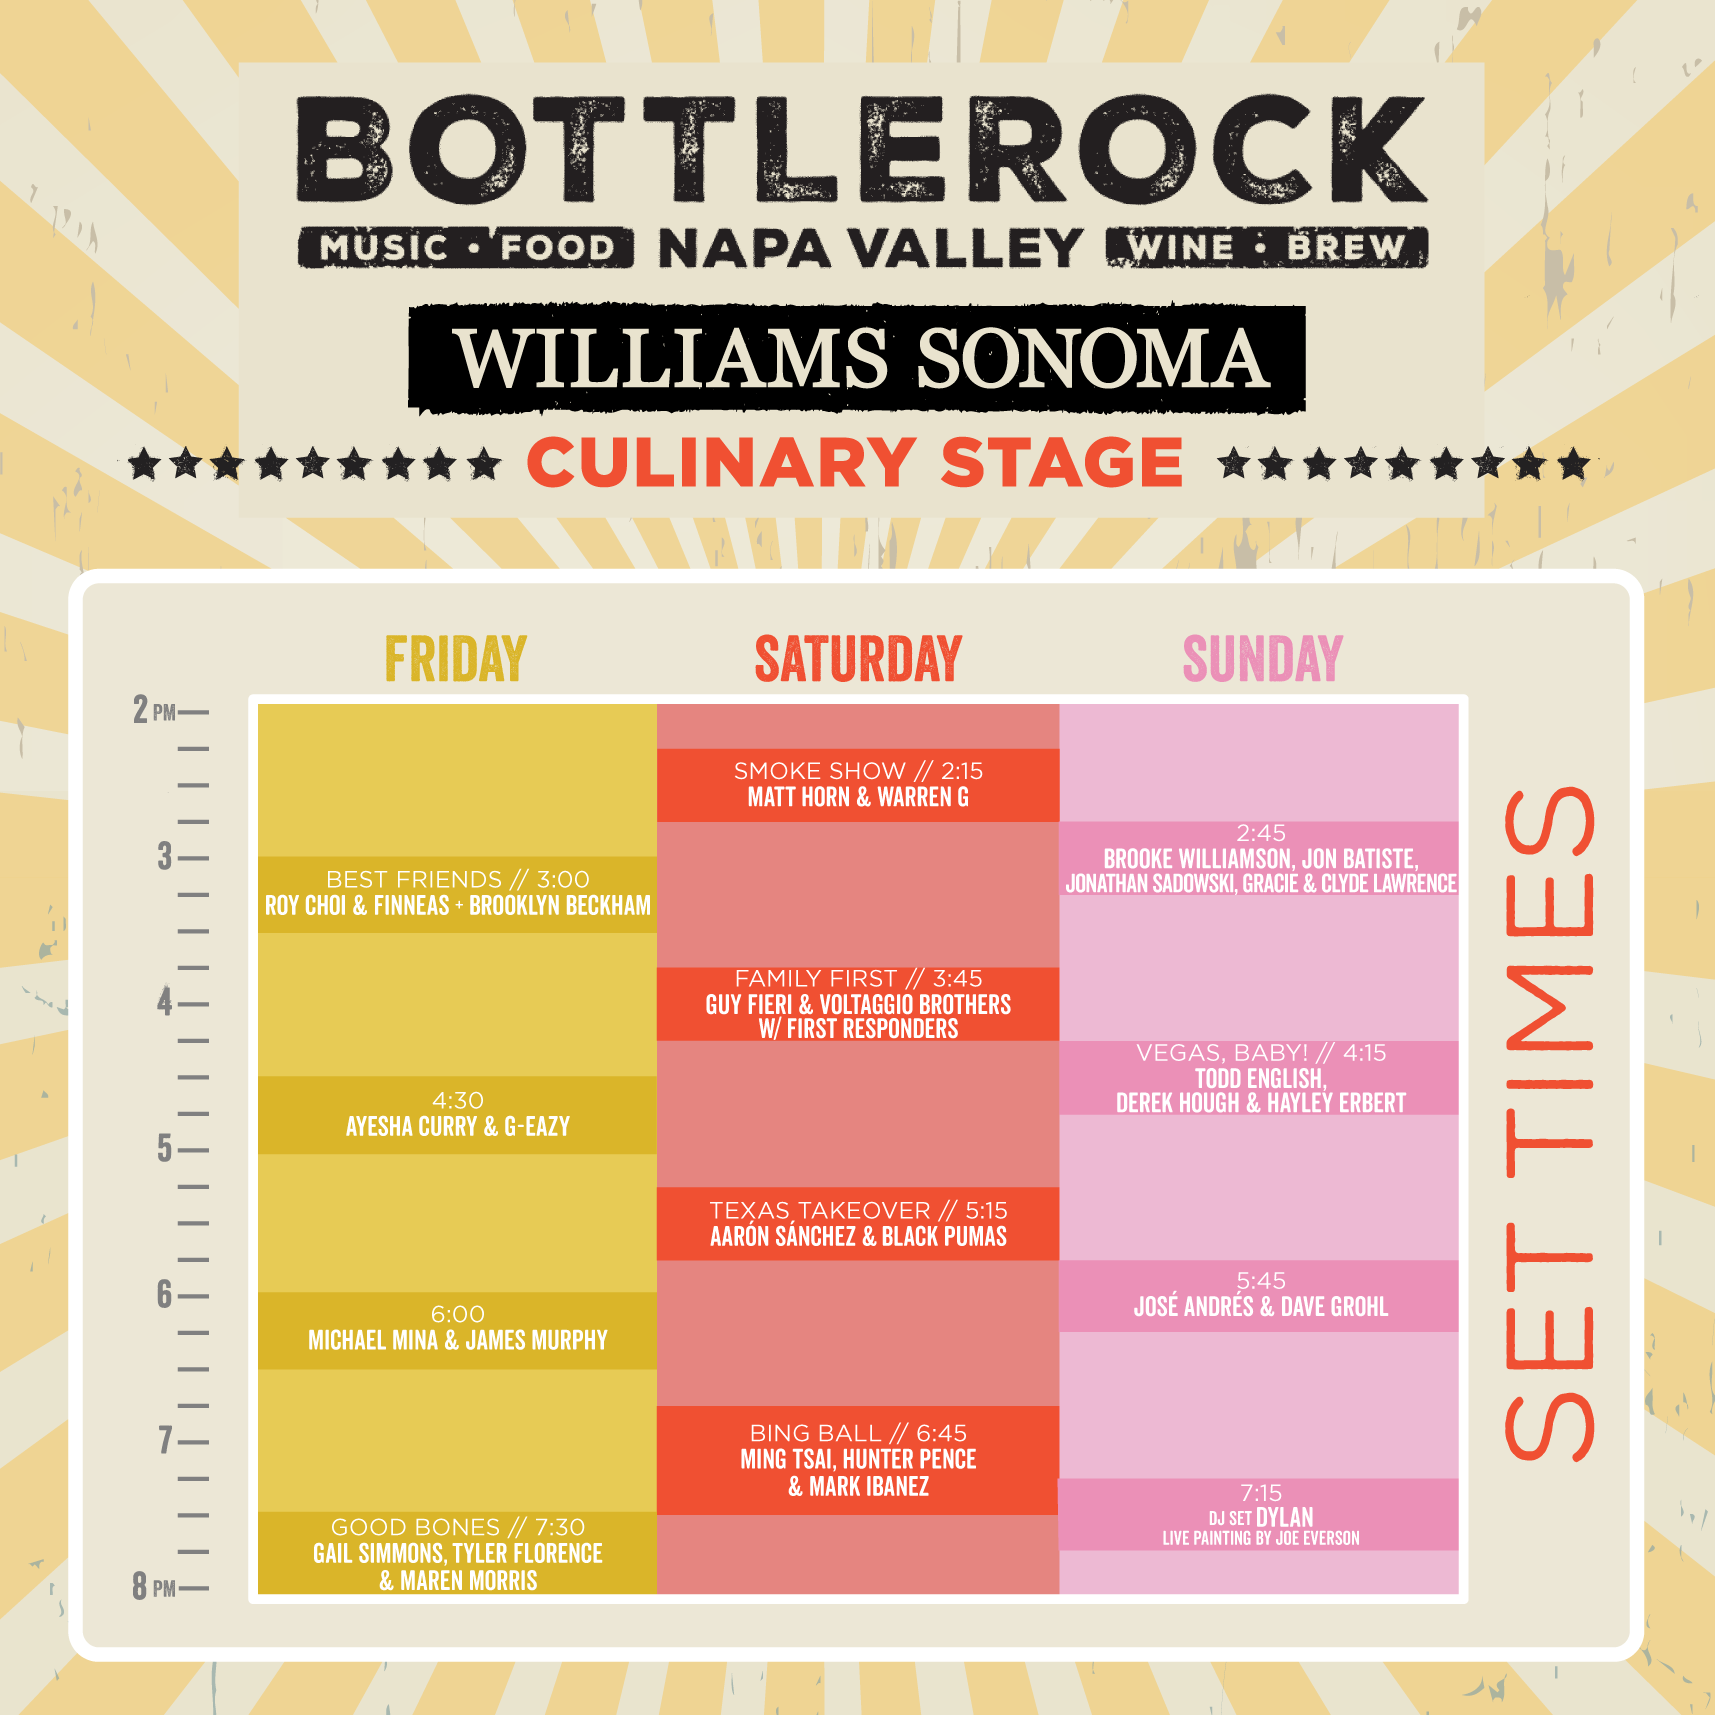 Bottlerock Culinary Stage lineup.